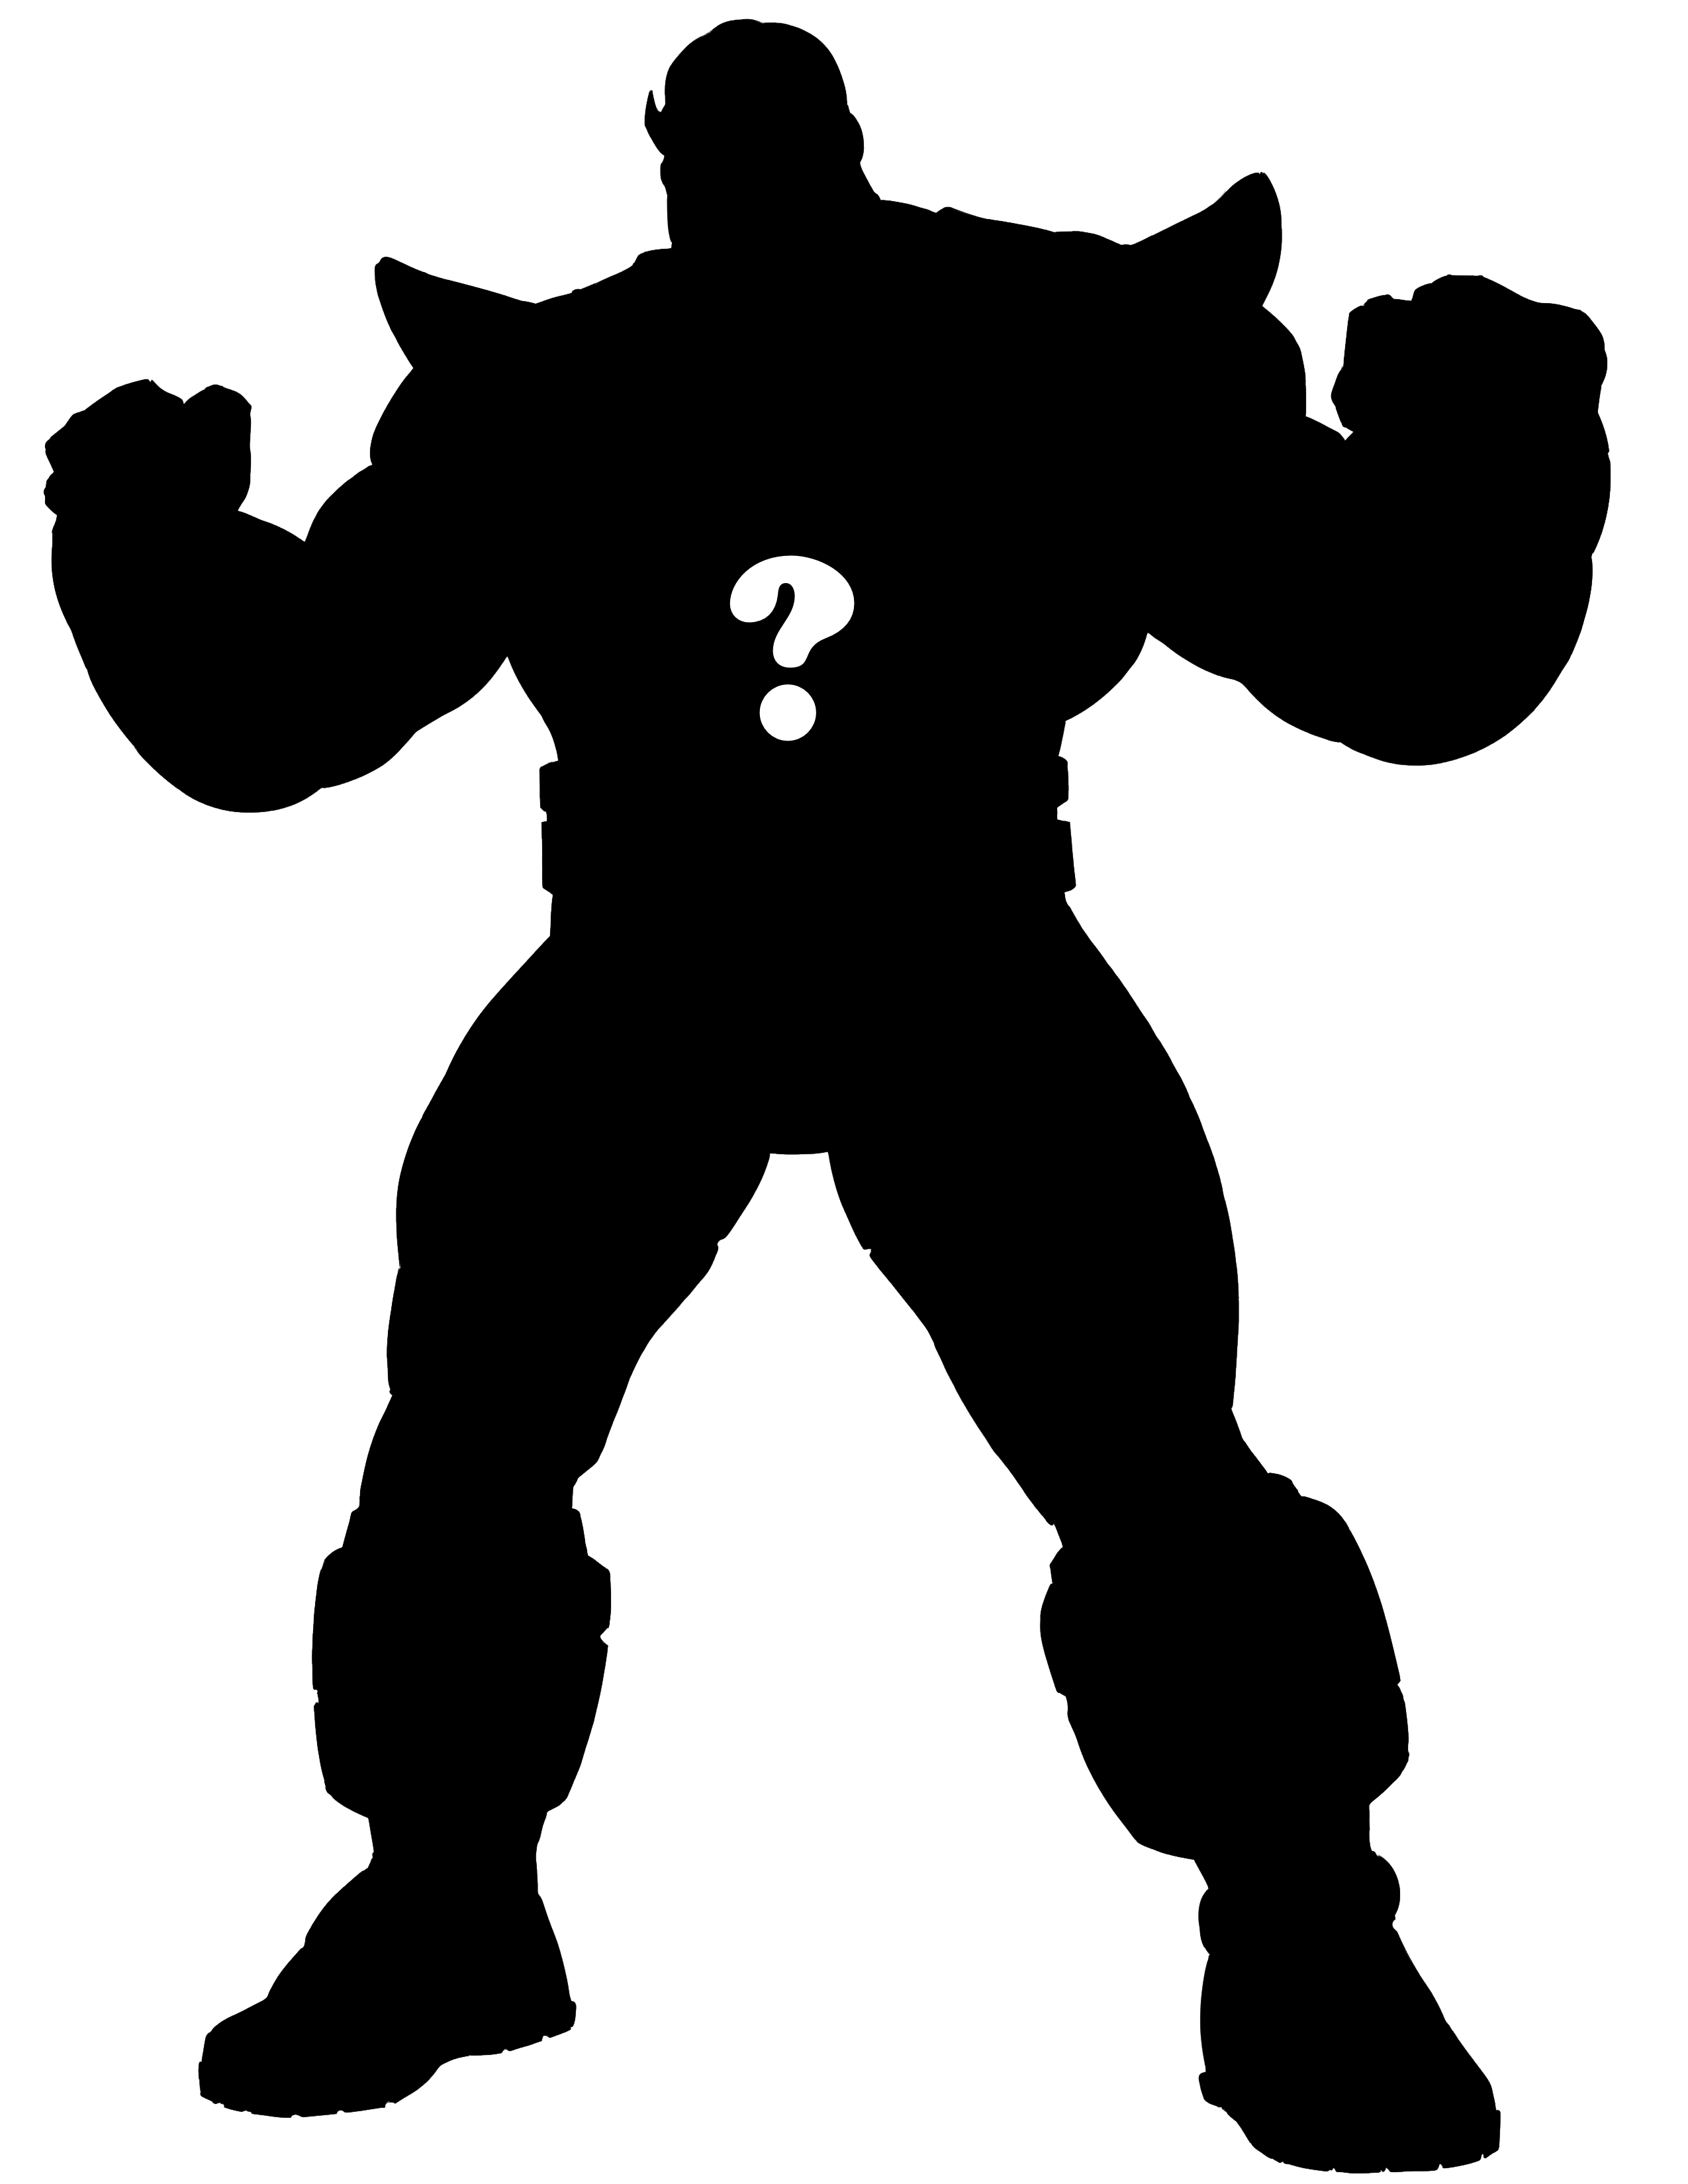 Thanos png silhouette. Lurkers come out let